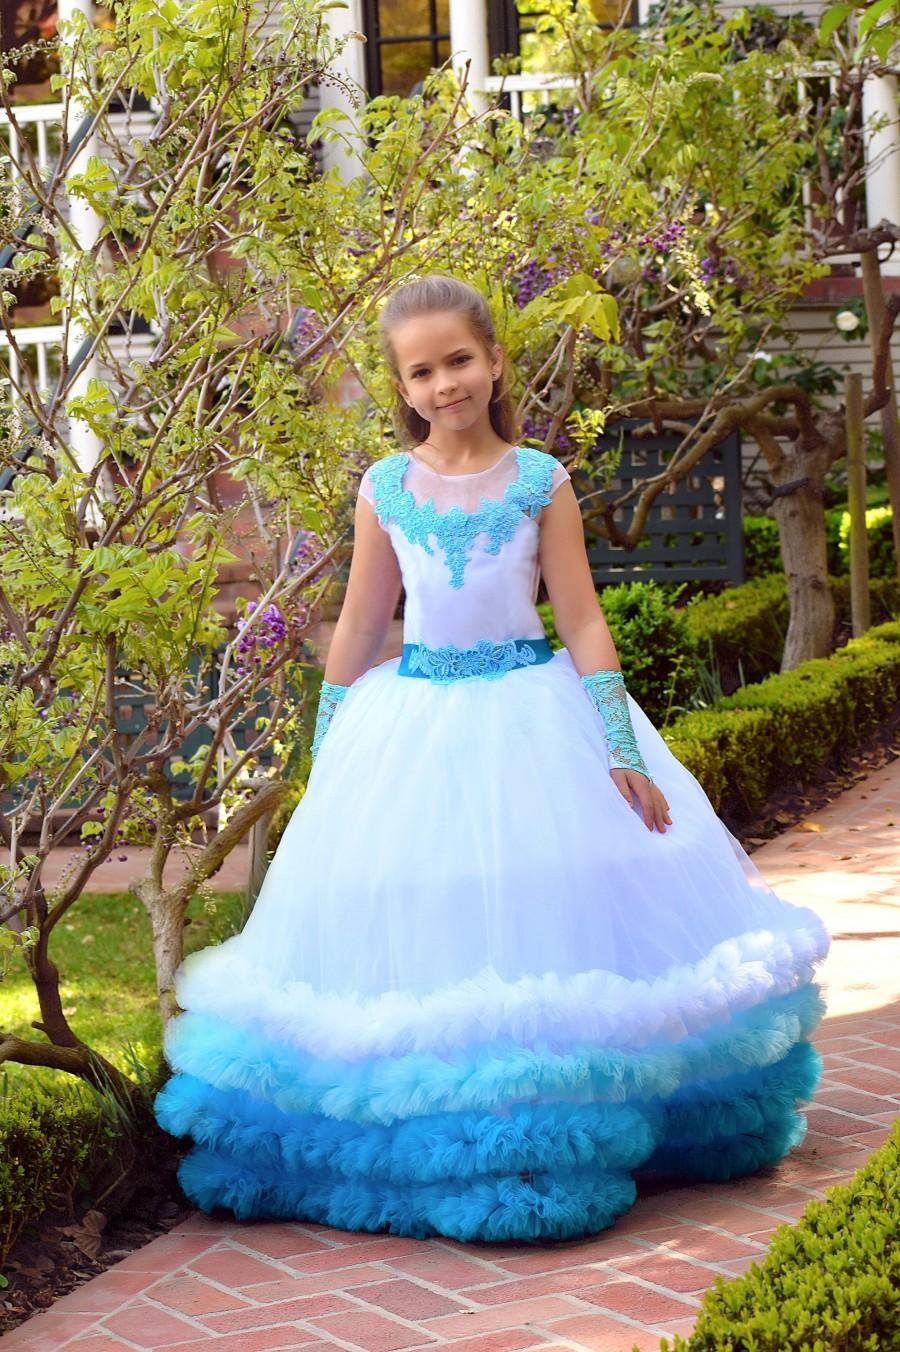 ada9b95c3b24b Ruffle Dress Flower Girl Dress Aqua Wedding Princess Dress Rainbow ...